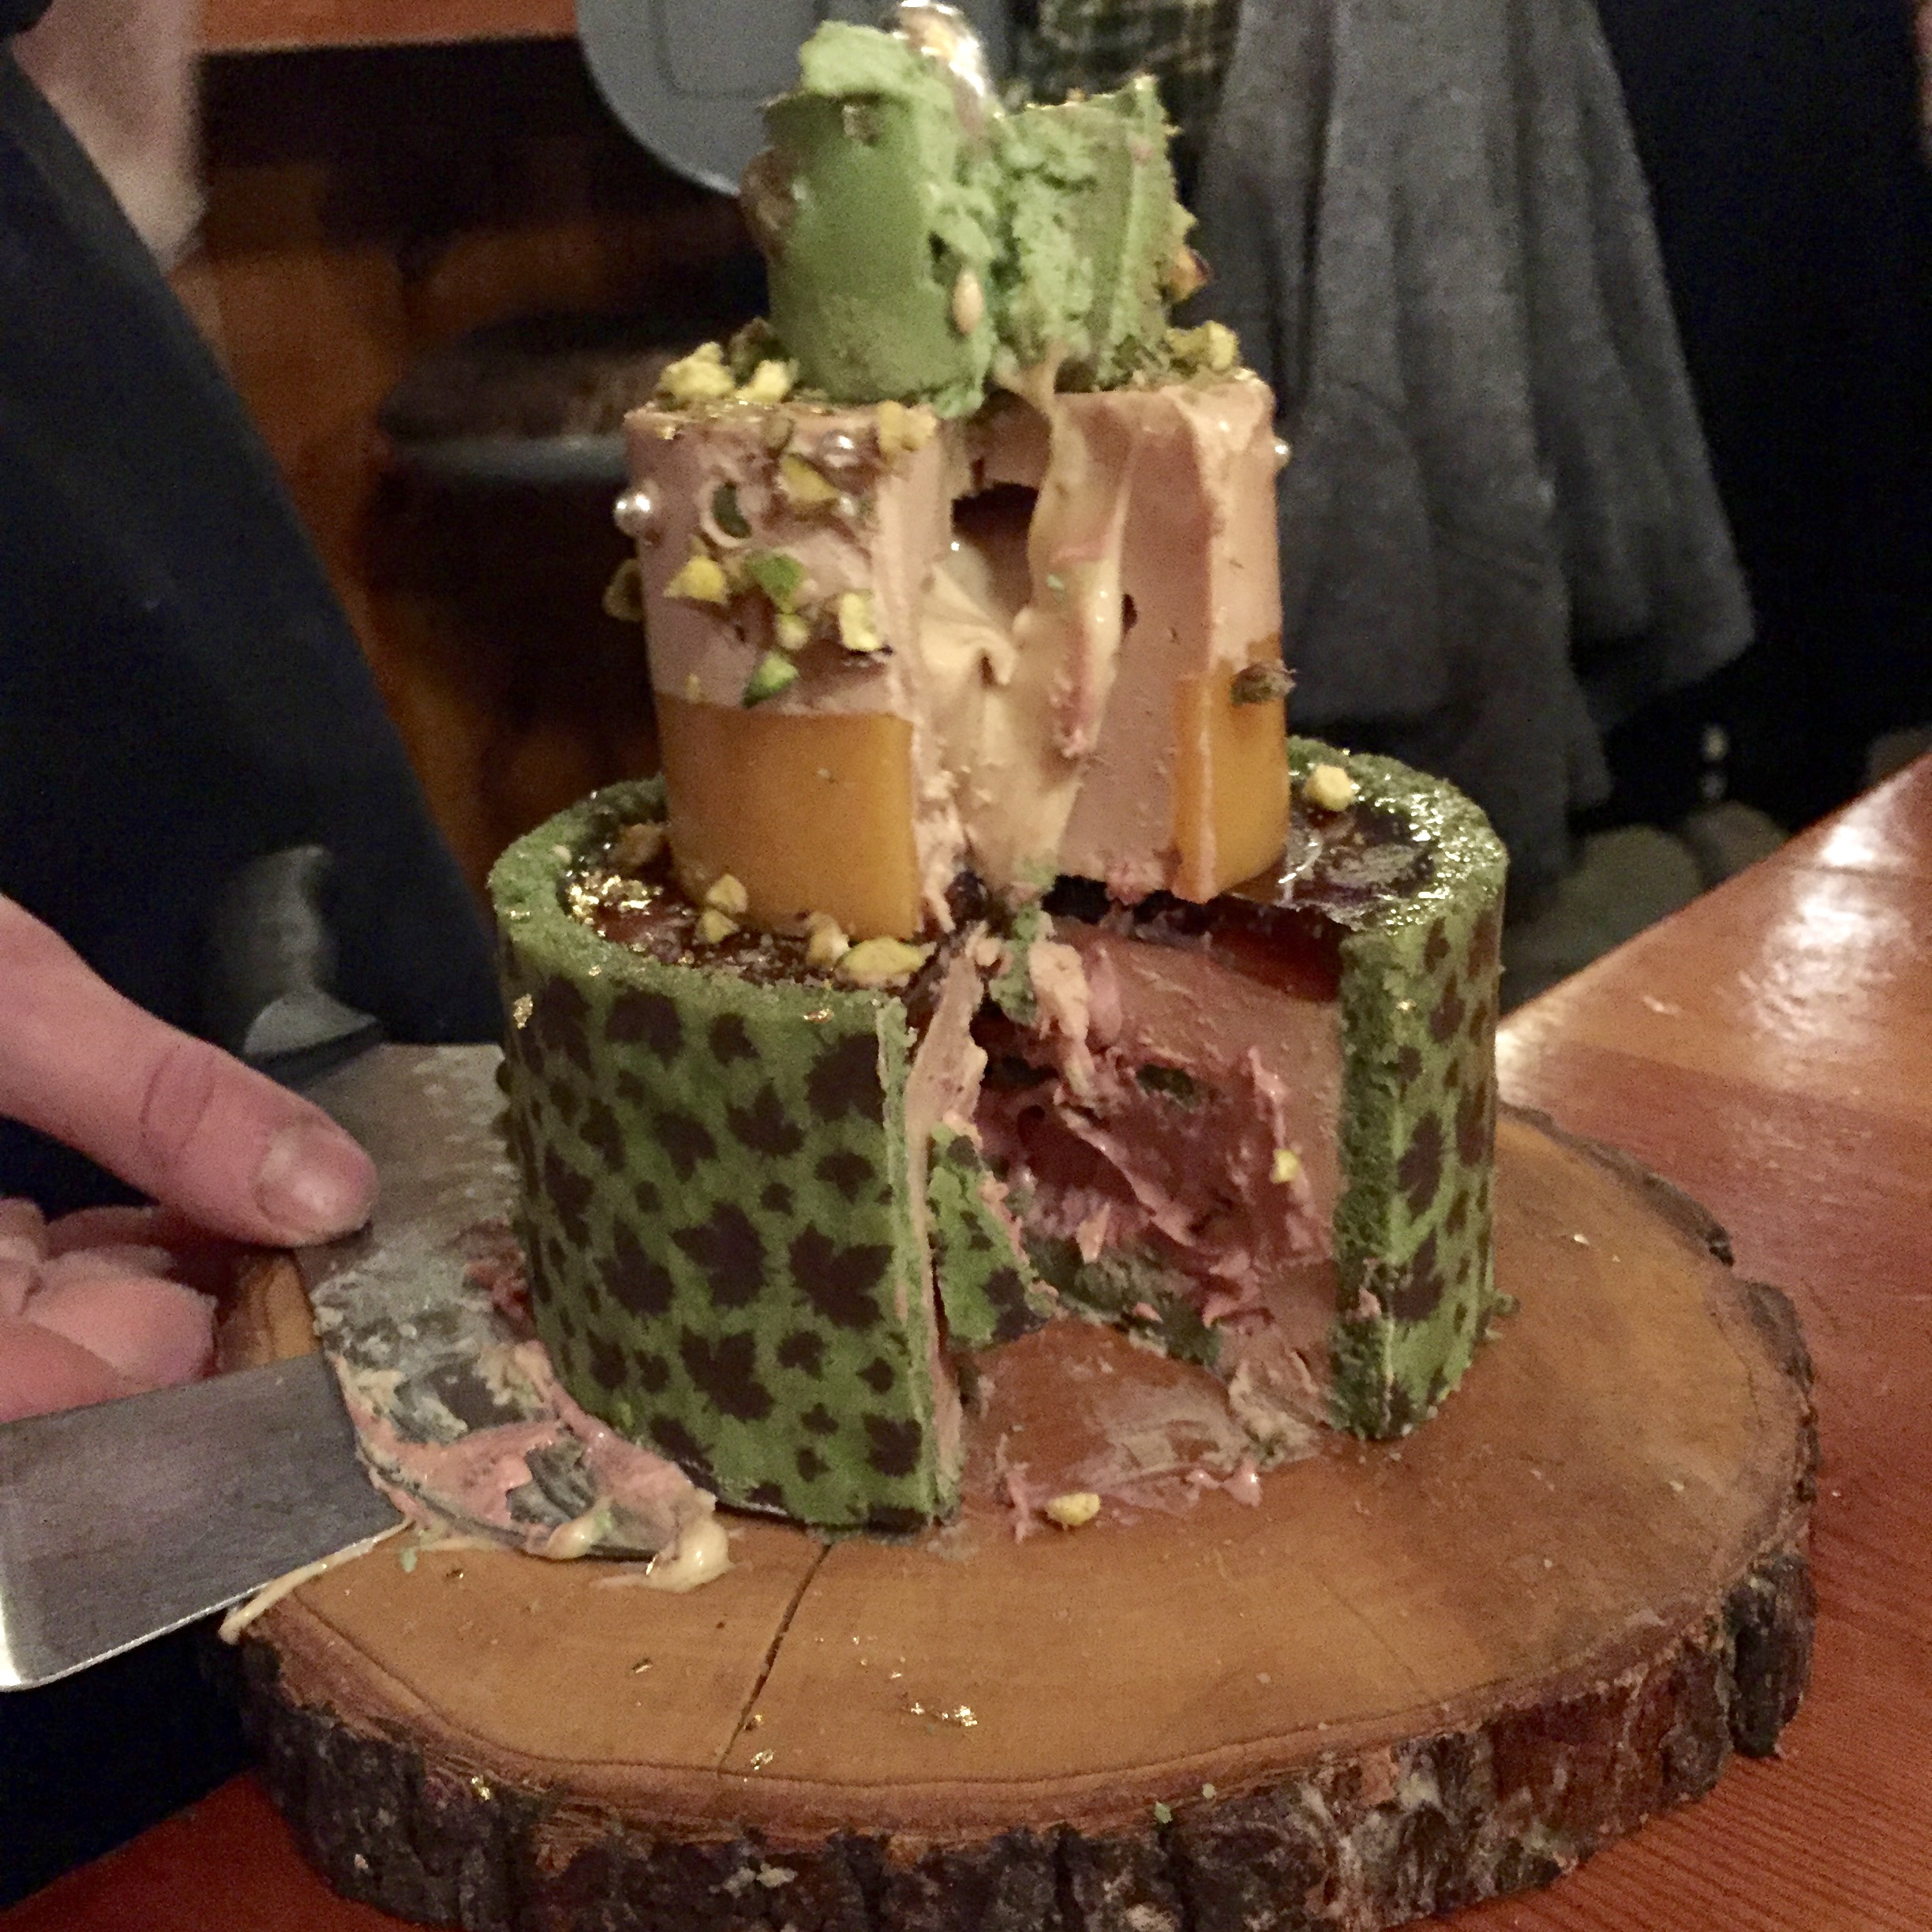 Notice the foie gras butter oozing out of layer two and the maple leaf detail on the bottom tier. Amazing.